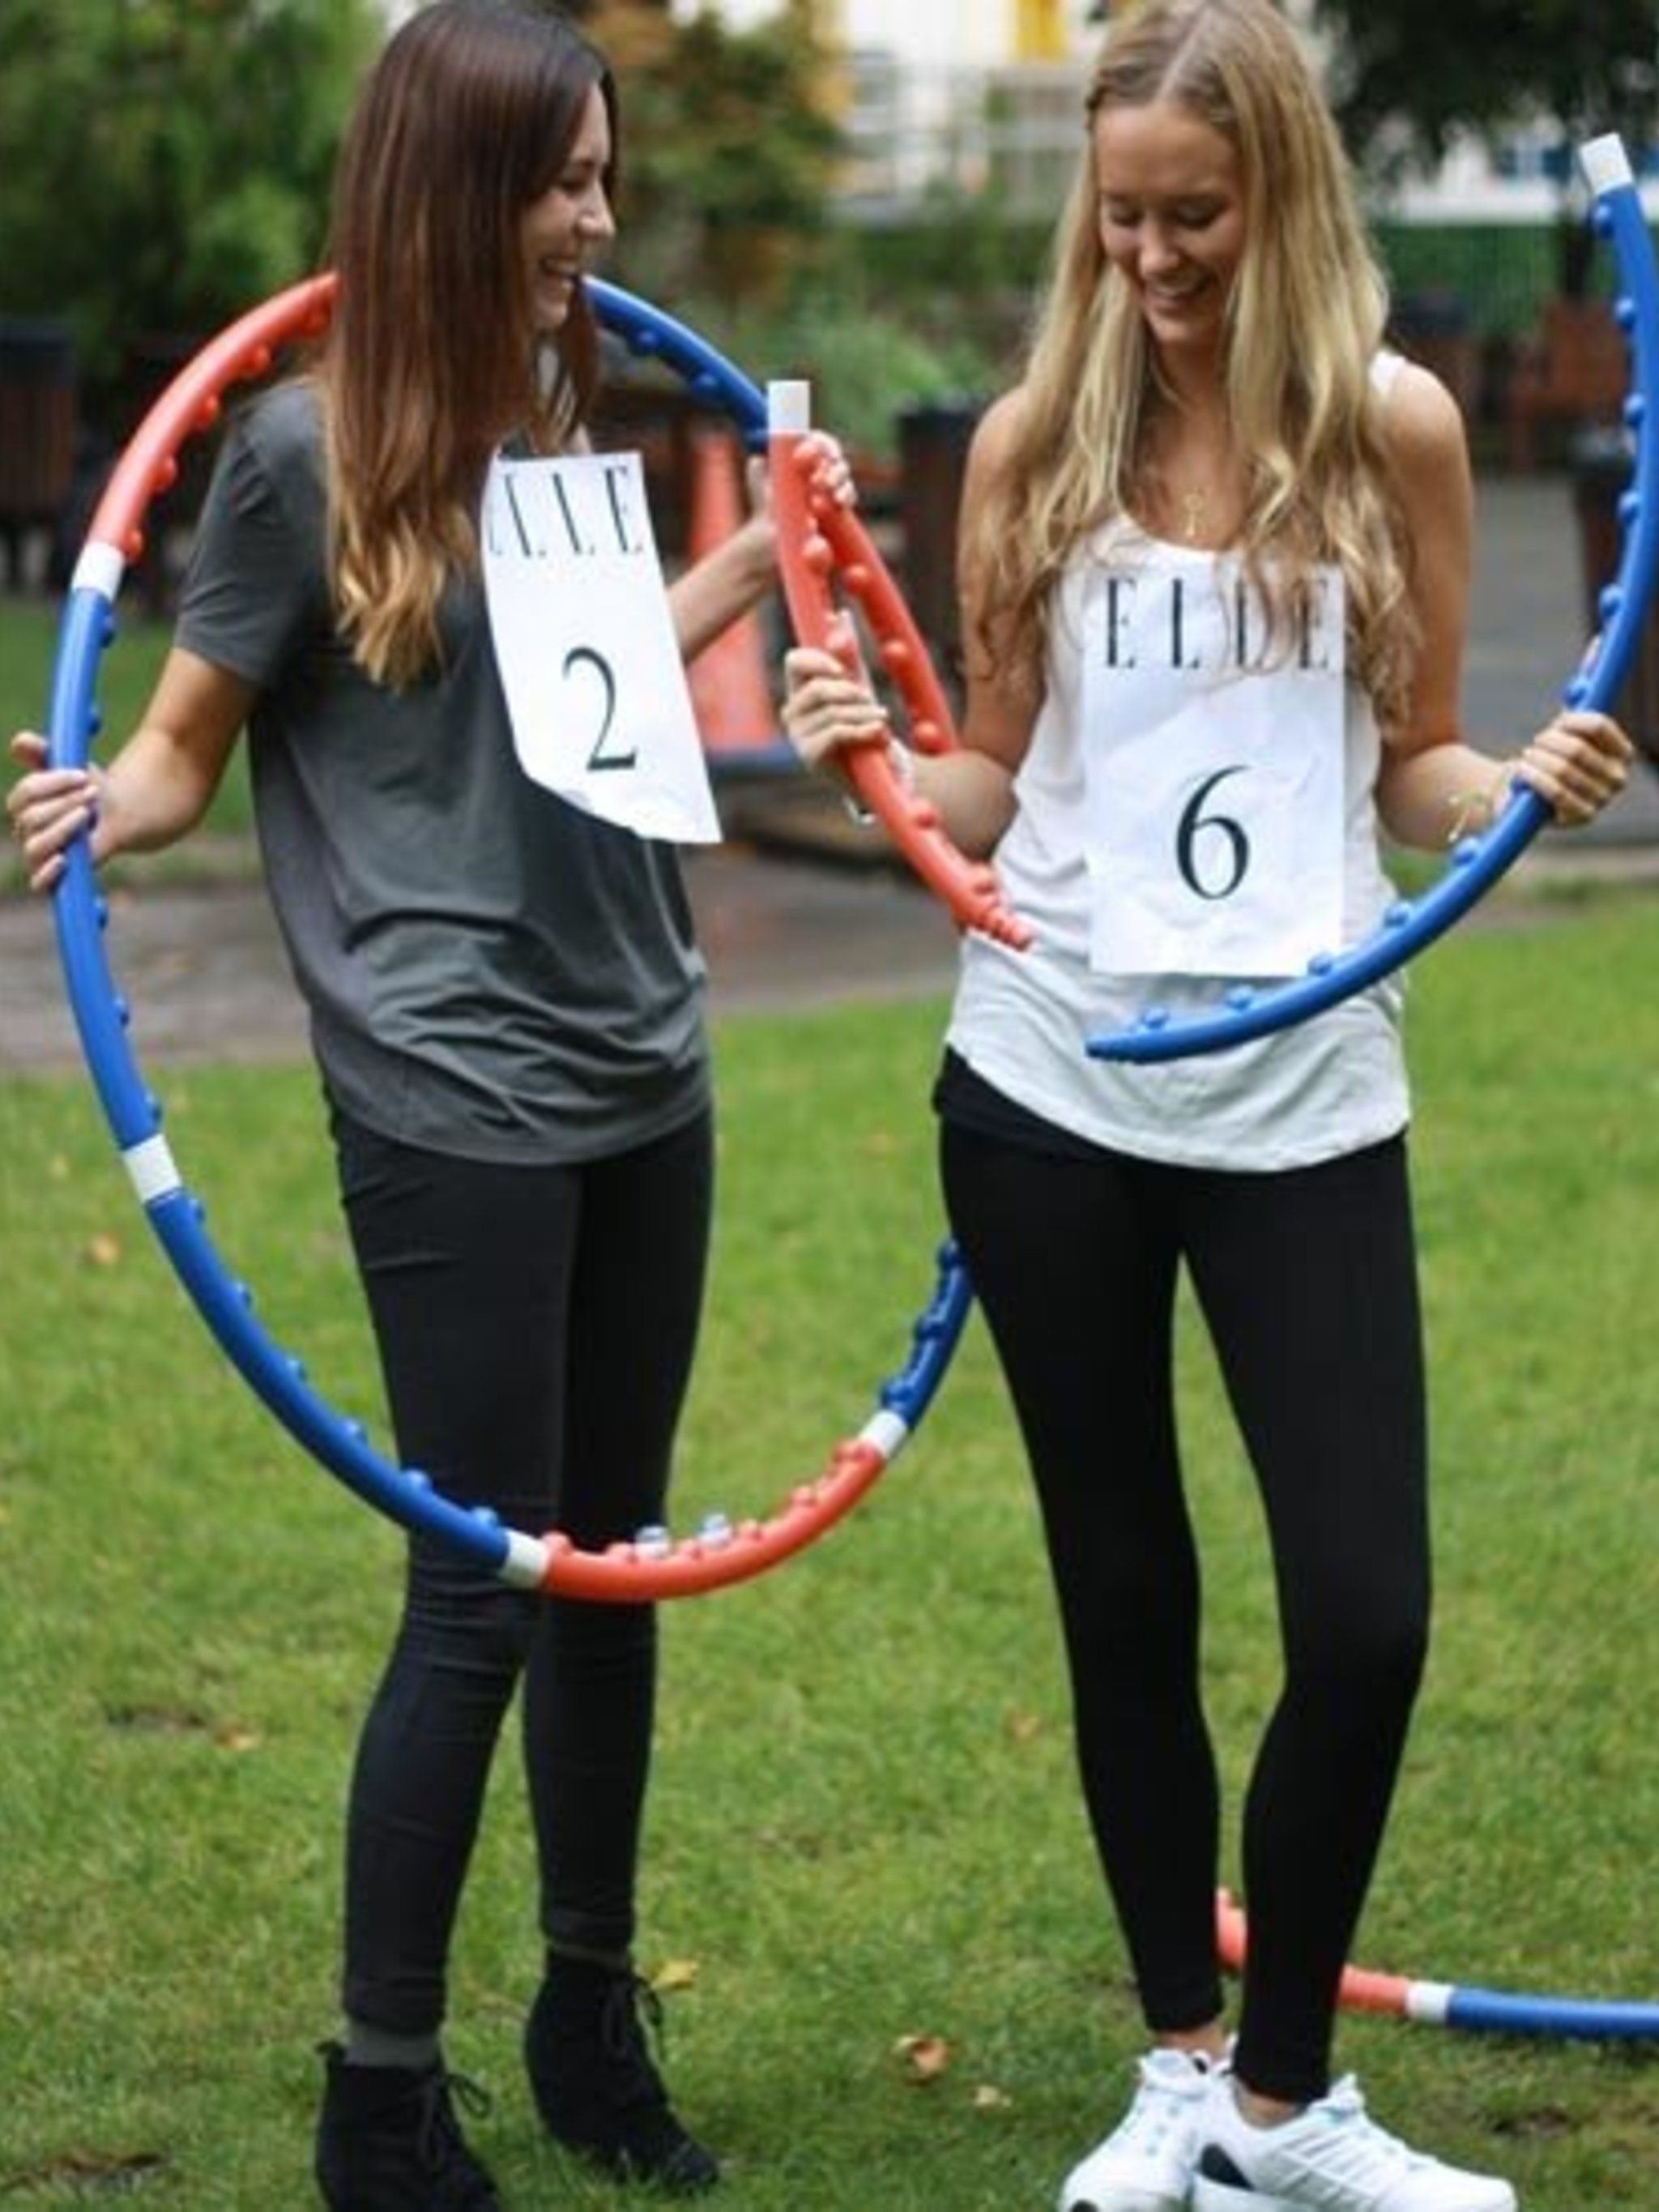 <p>We learnt a couple of valuable lessons in the 'hula-off' between Acting Picture Editor Nikki (2) and Beauty Intern Joely (6): one, make sure your hula-hoop is properly assembled. And two, hula-hooping in wedges is a <em>bad </em>idea. Not surprisingly